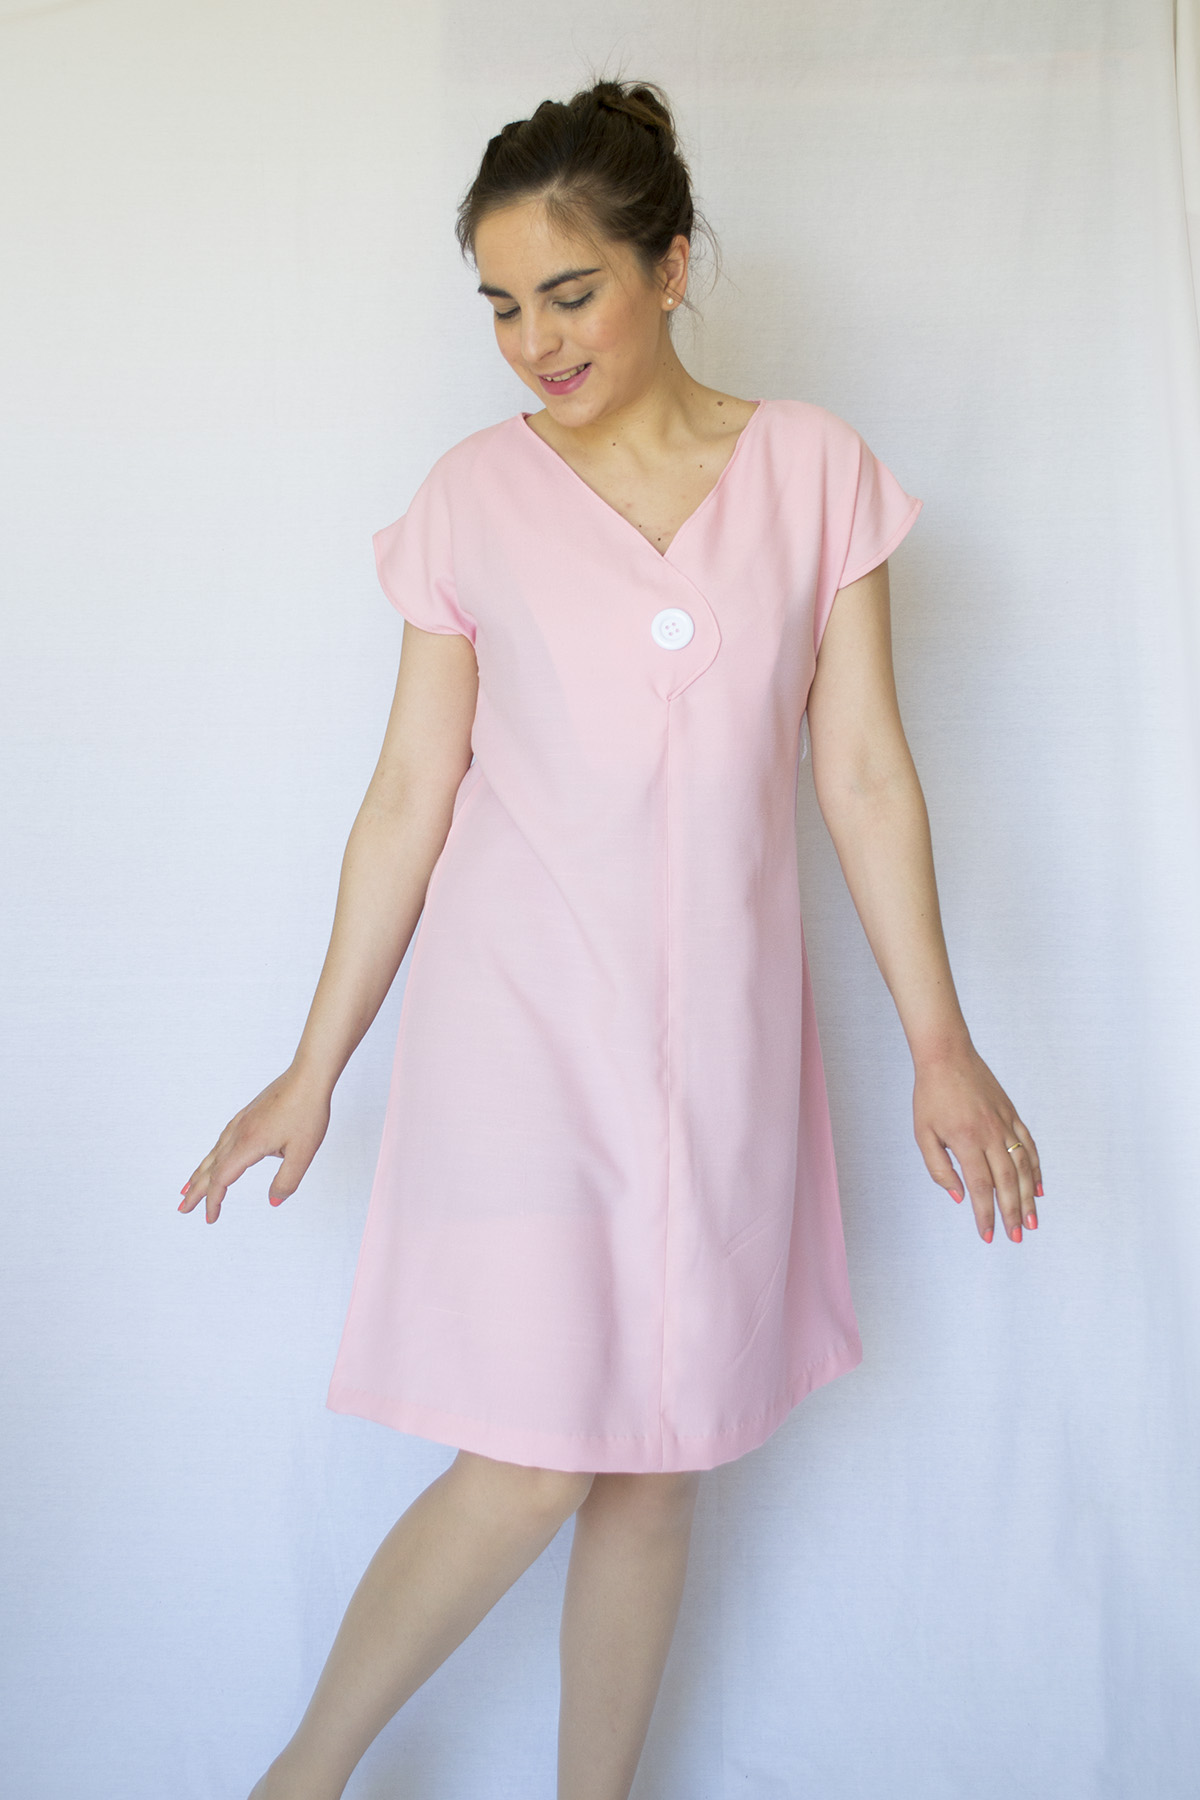 The Afternoon Shift Dress by Jennifer Lauren Handmade